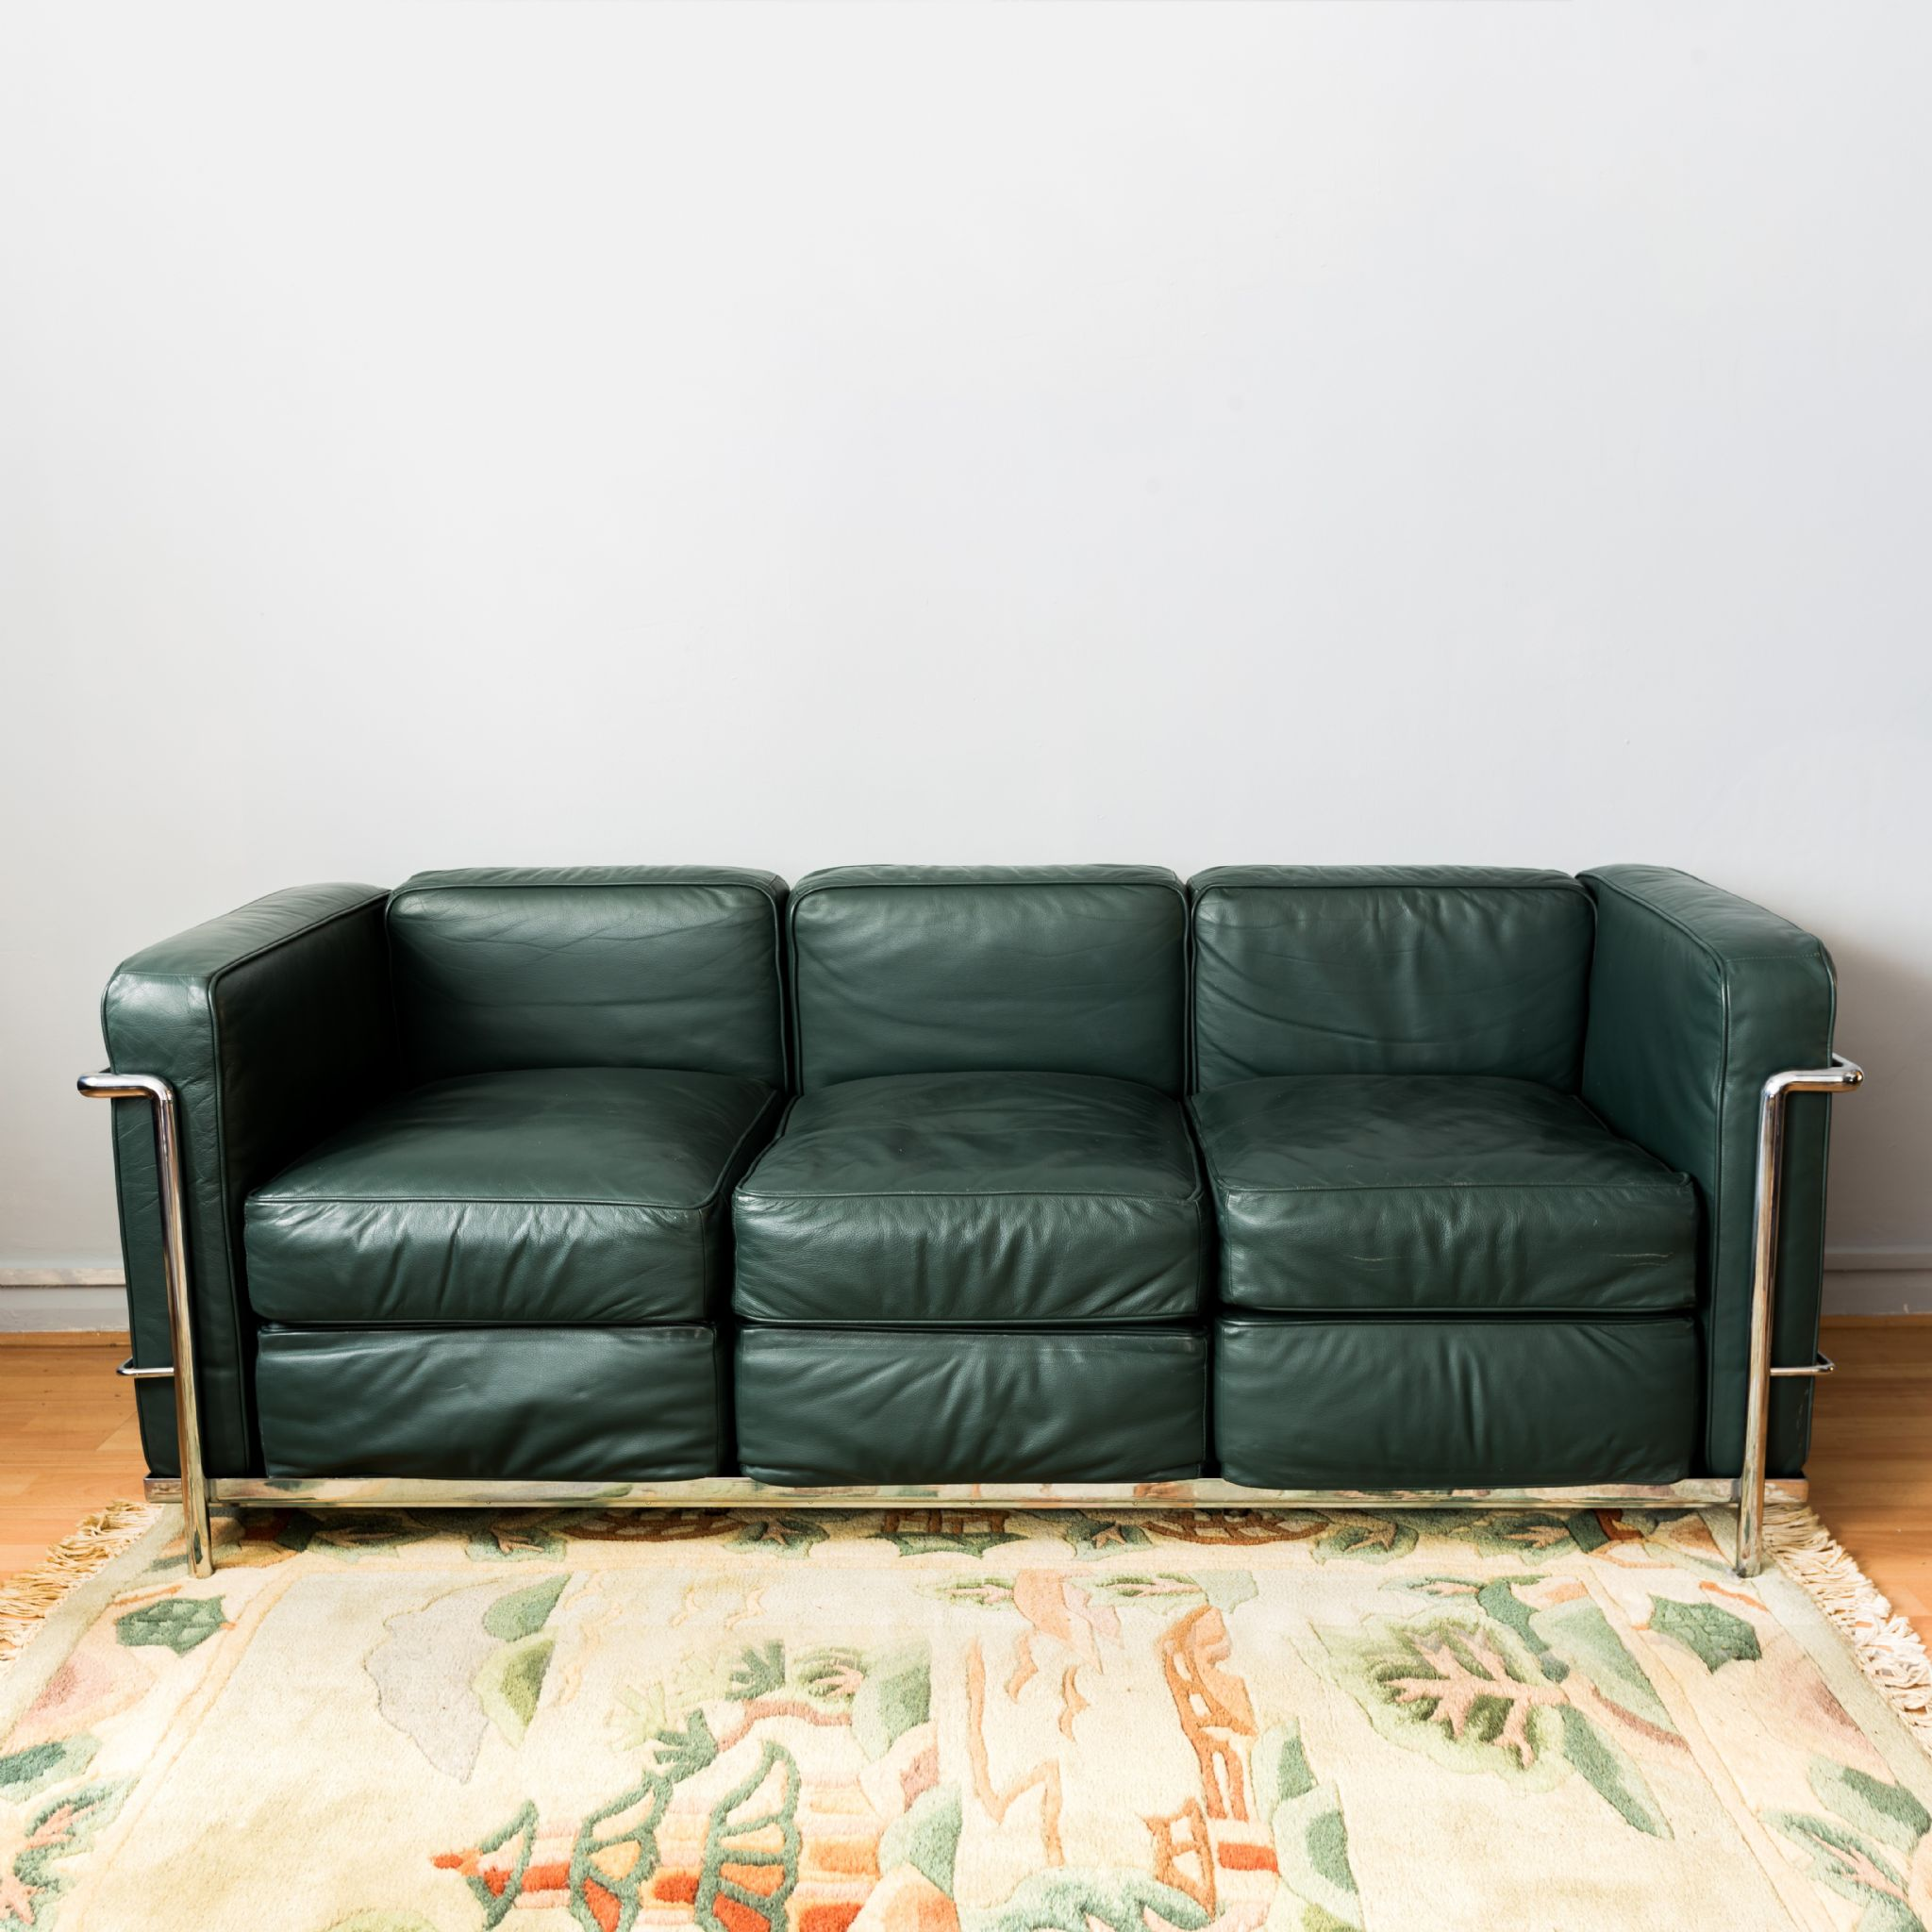 Le Corbusier Lc2 Green Leather Sofa